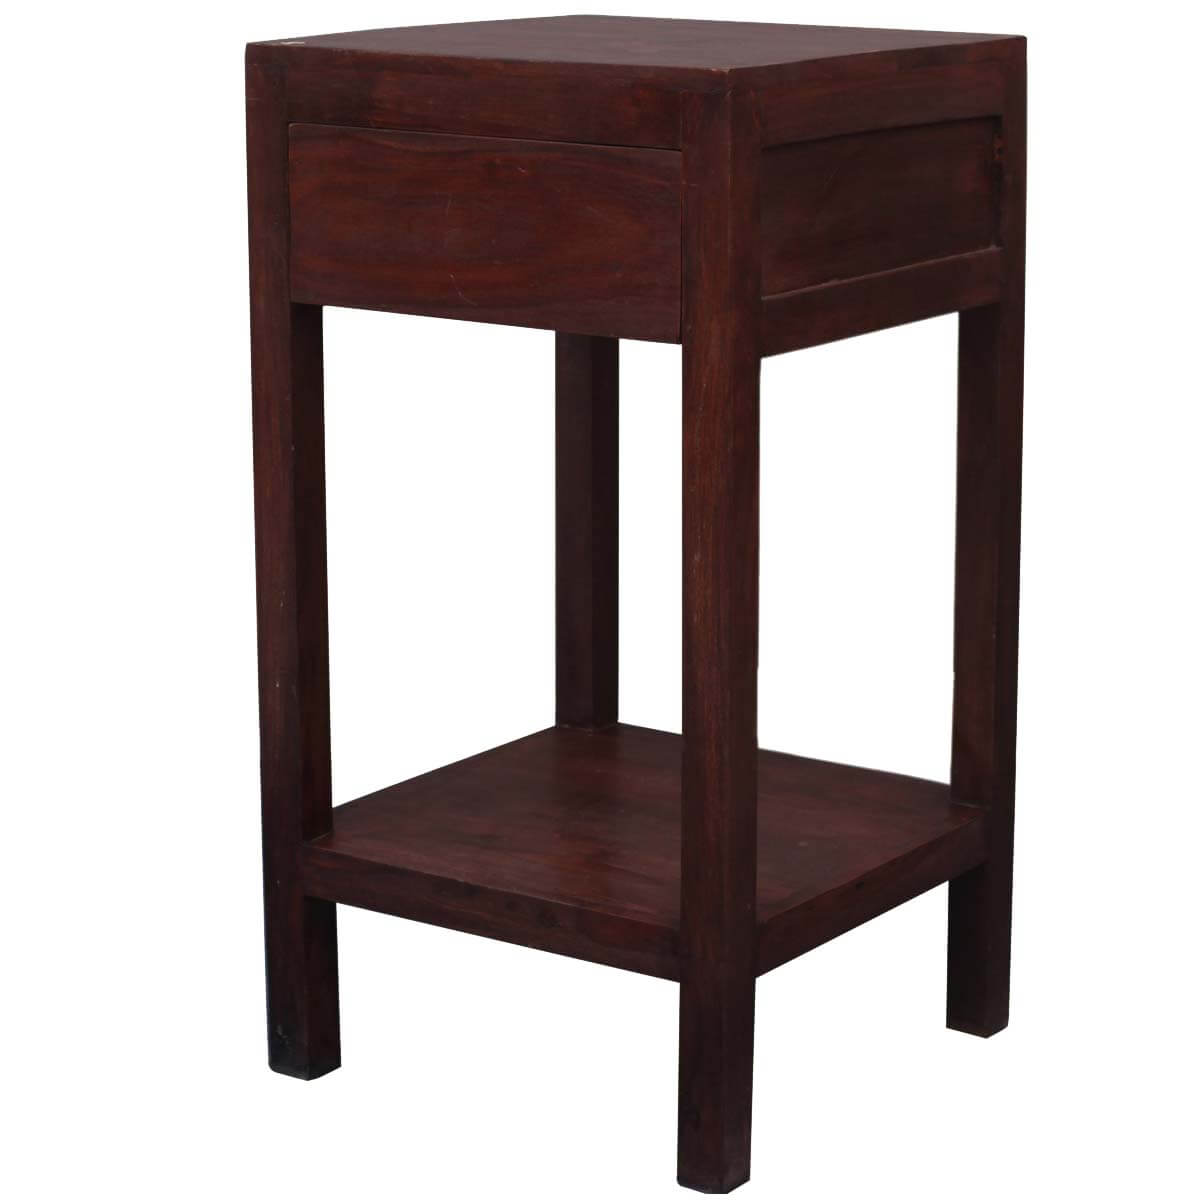 Contemporary Solid Wood Night Stand End Table